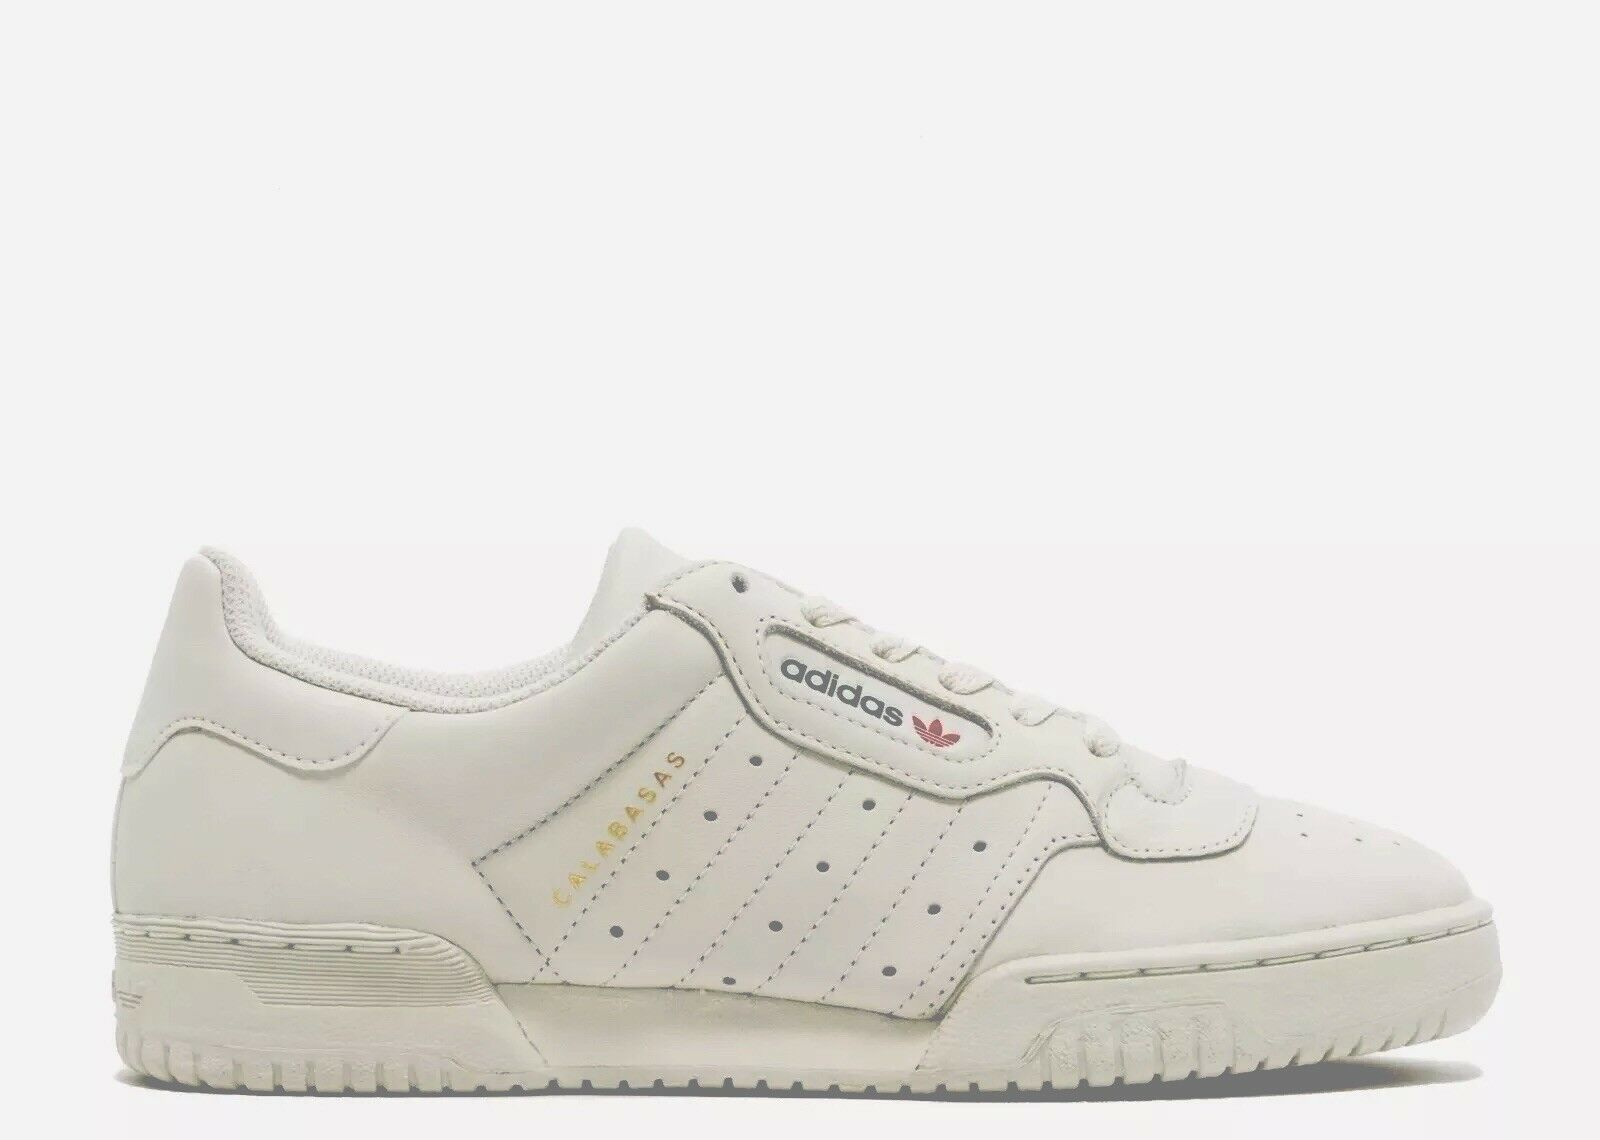 Man's/Woman's yeezy powerphase calabasas Personalization quality First batch of customers Personalization calabasas trend 474127